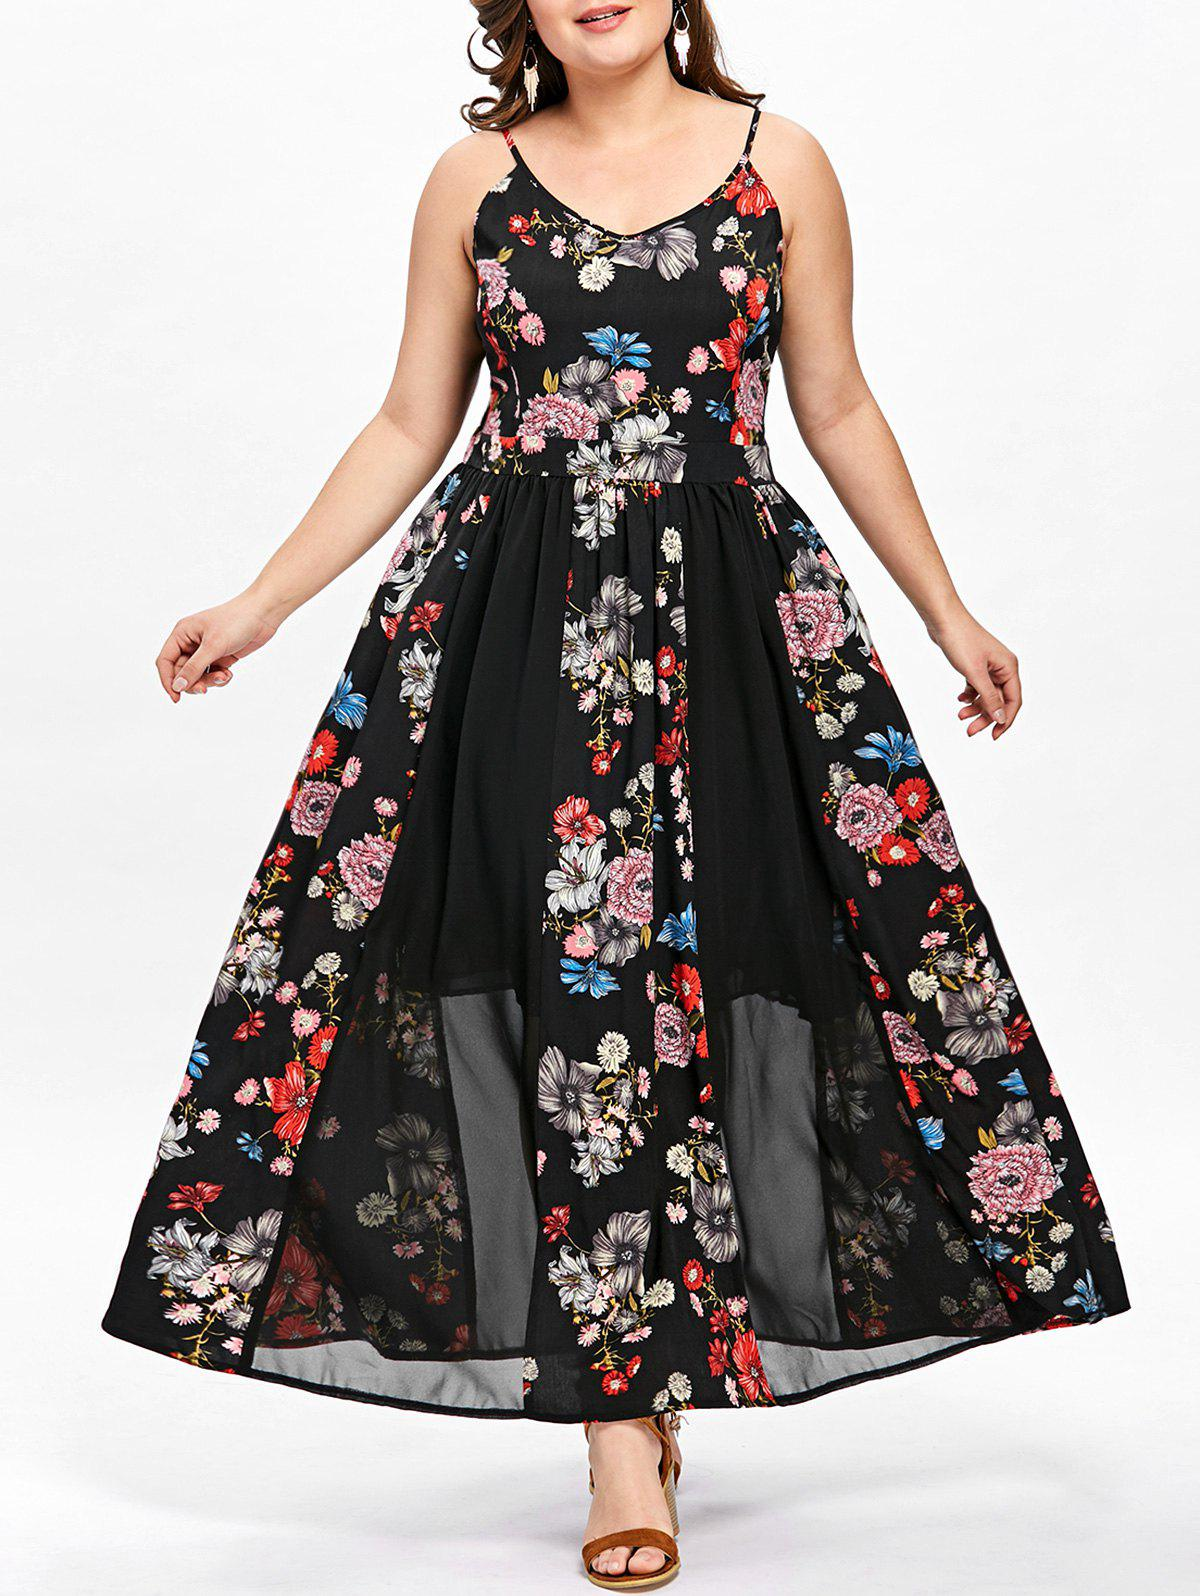 2018 Plus Size Bohemian Floral Flowy Slip Dress Black Xl In Maxi